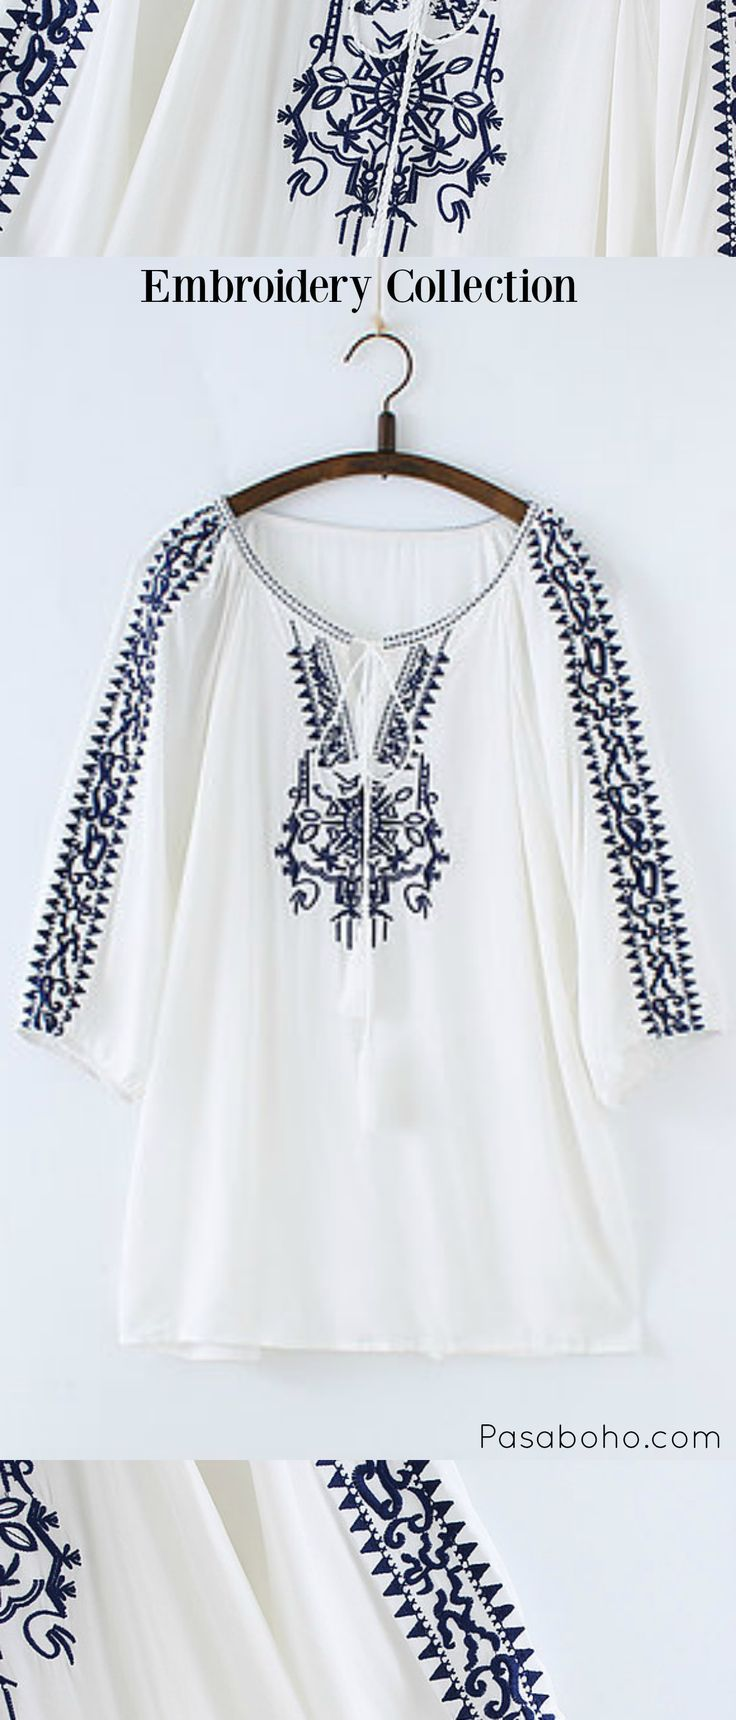 $32.90 - Free Spirit Boho Top is Now Available at Pasaboho ( this boho top exhibits unique design with ethnic embroidered patterns )